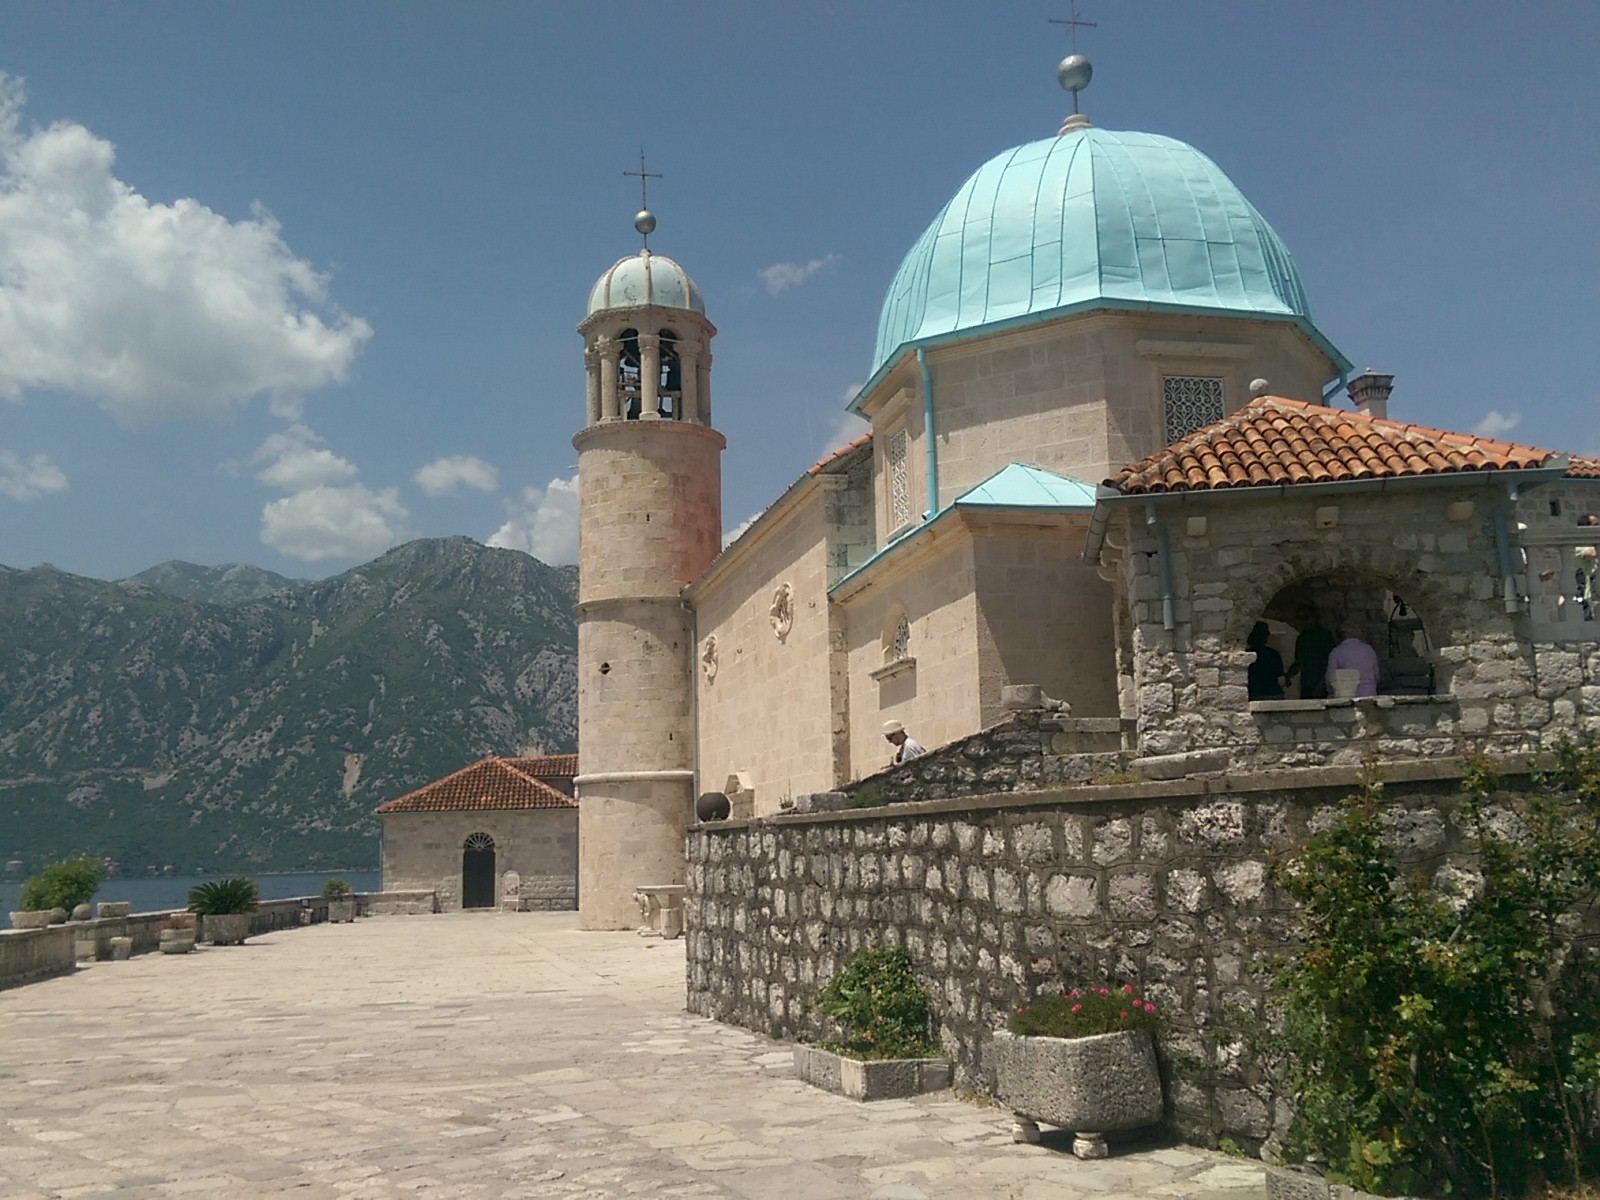 A stone church with a blue dome and a tower, with background mountains